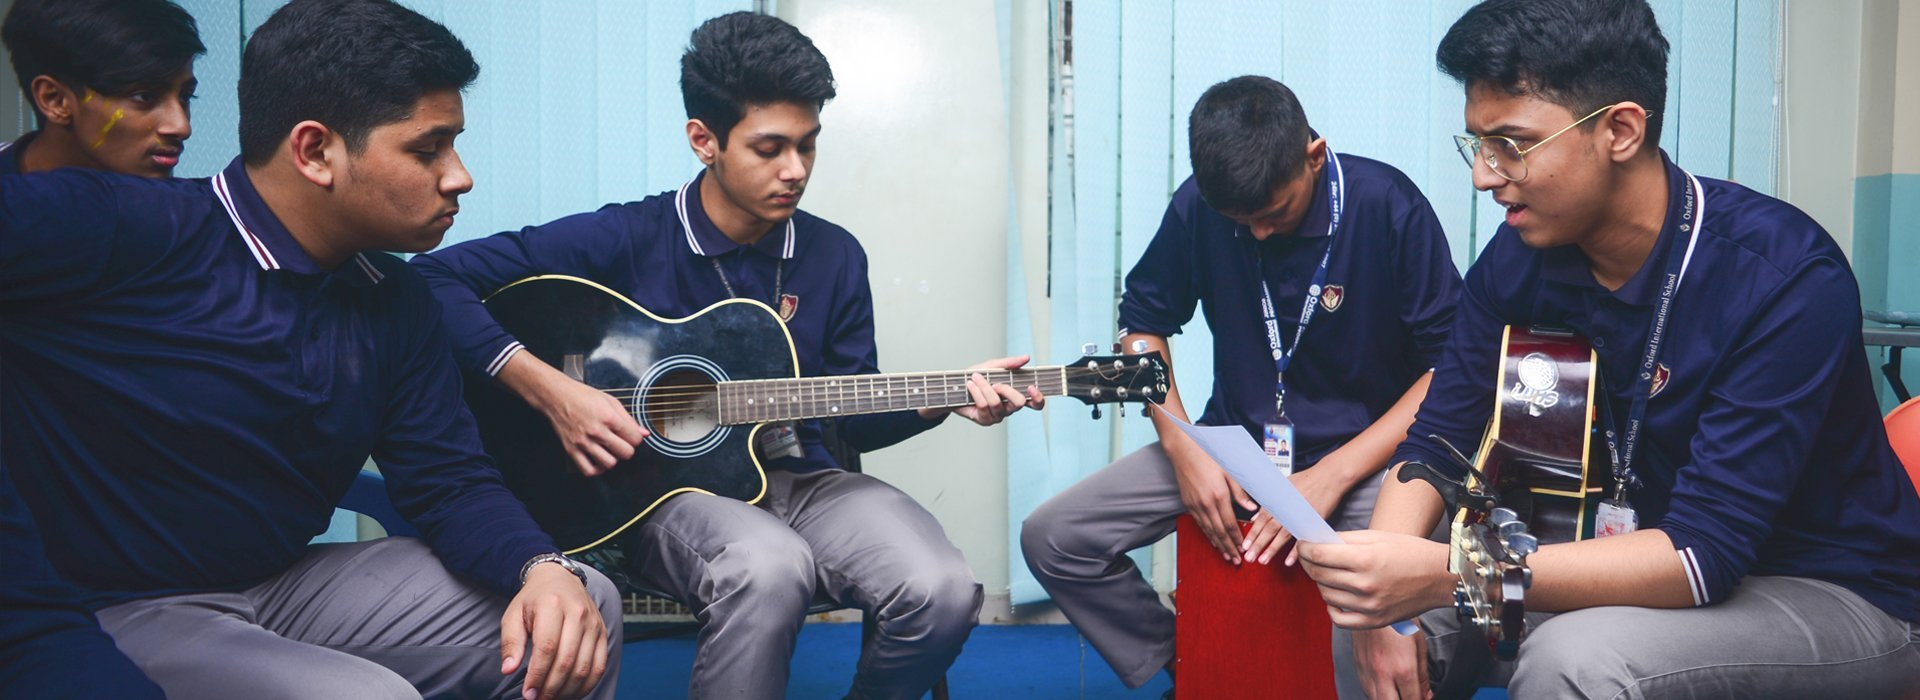 Student Play Guiter